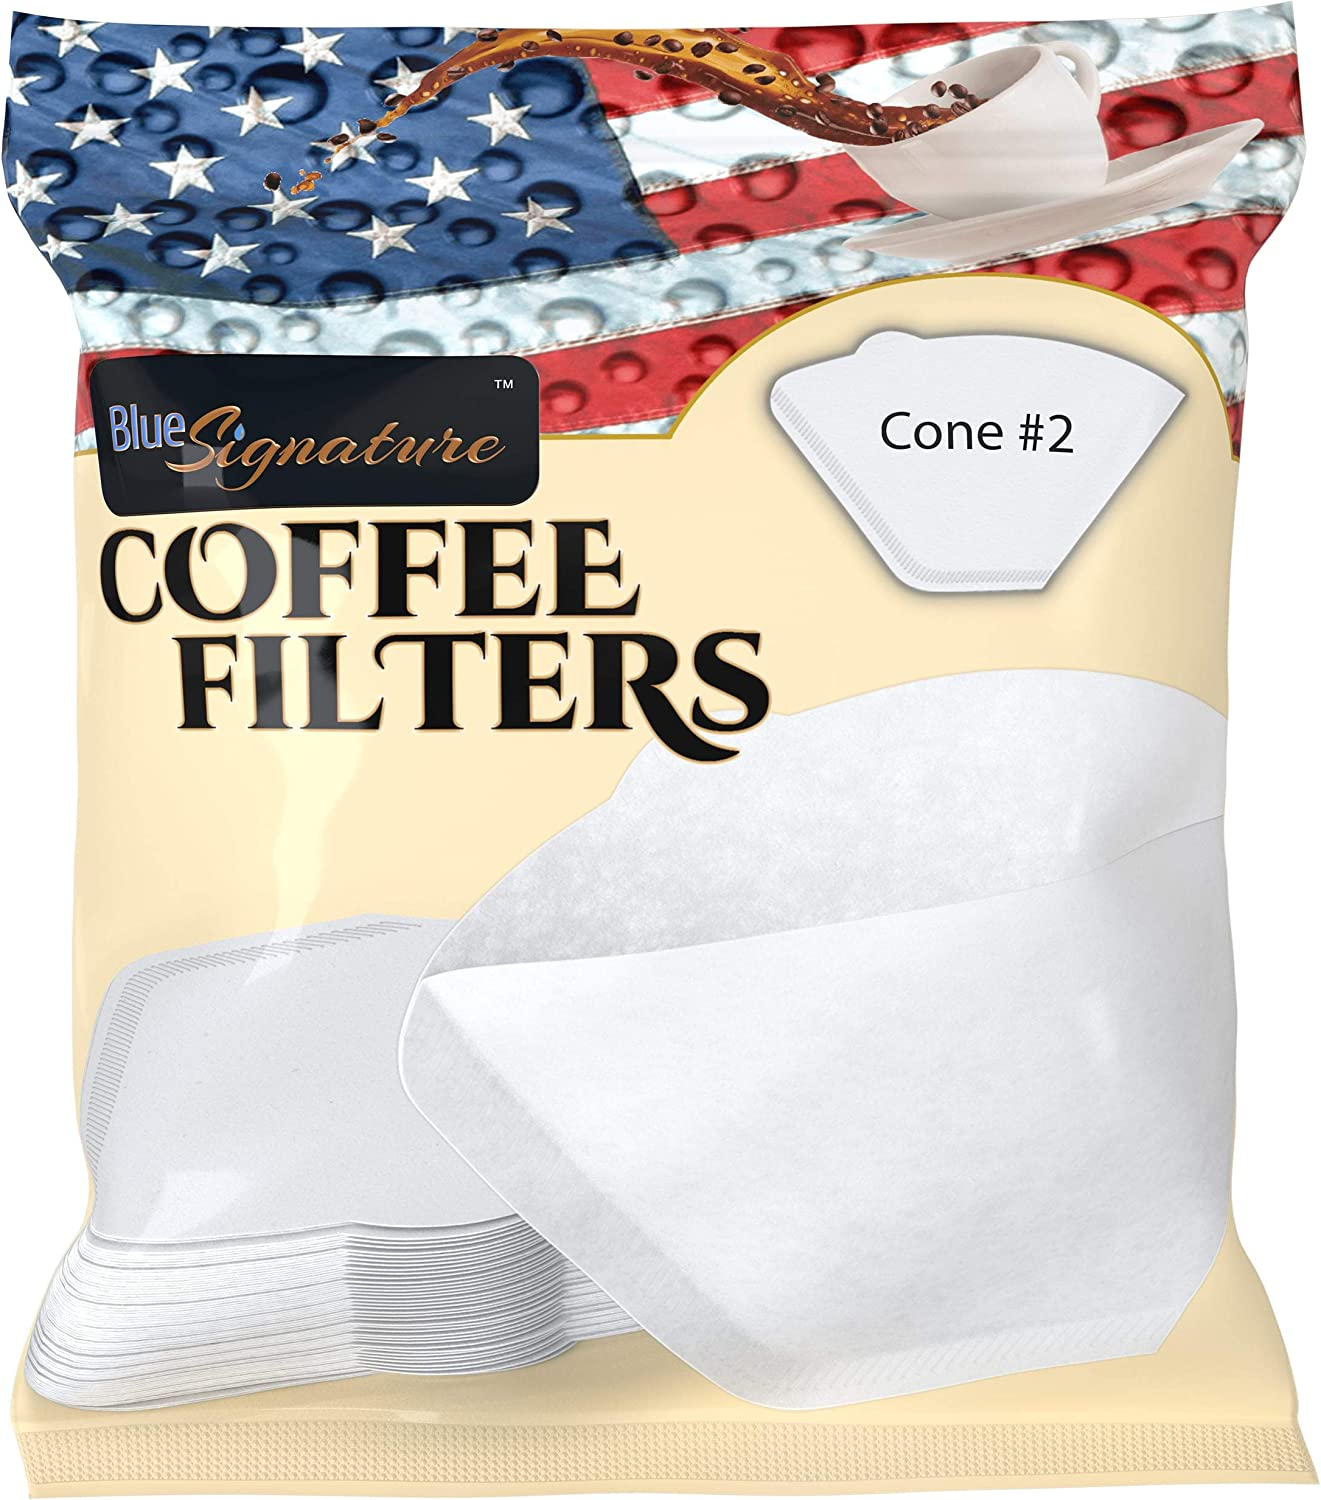 Coffee Filters #2 Cone, 40 Premium Pour Over Coffee Filter White Paper, für 1 Cup Drip & 2 zu 6 Cup Brewers